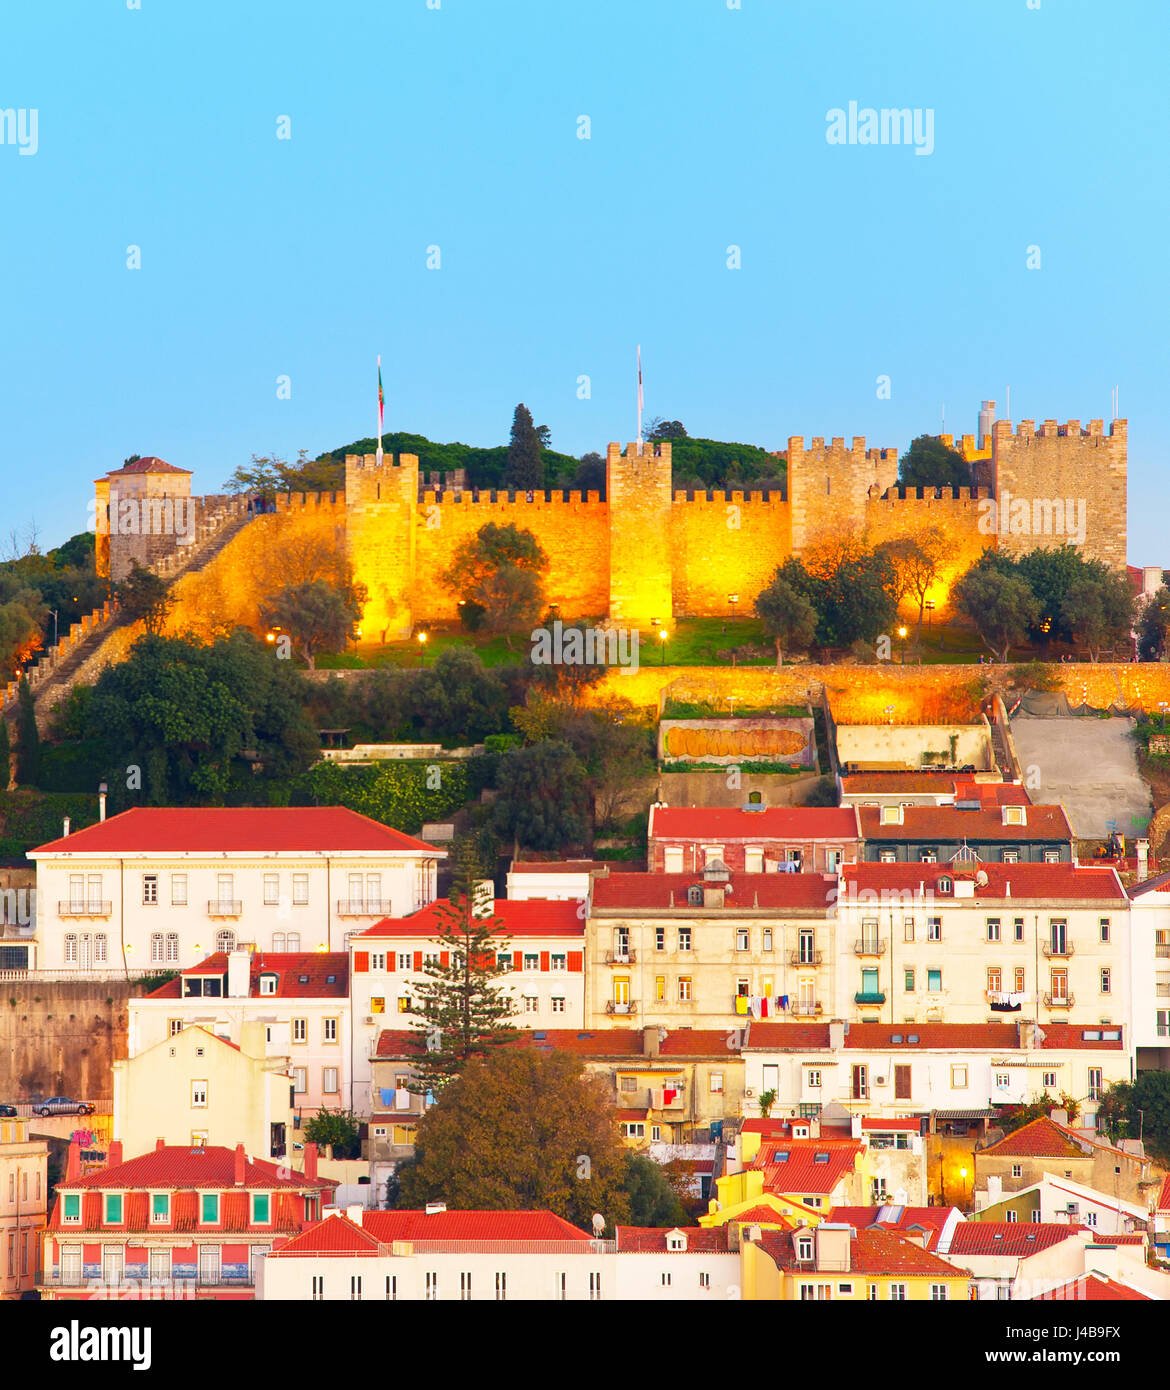 Lisbon Castle on a top of a hill at dusk. Lisbon, Portugal - Stock Image